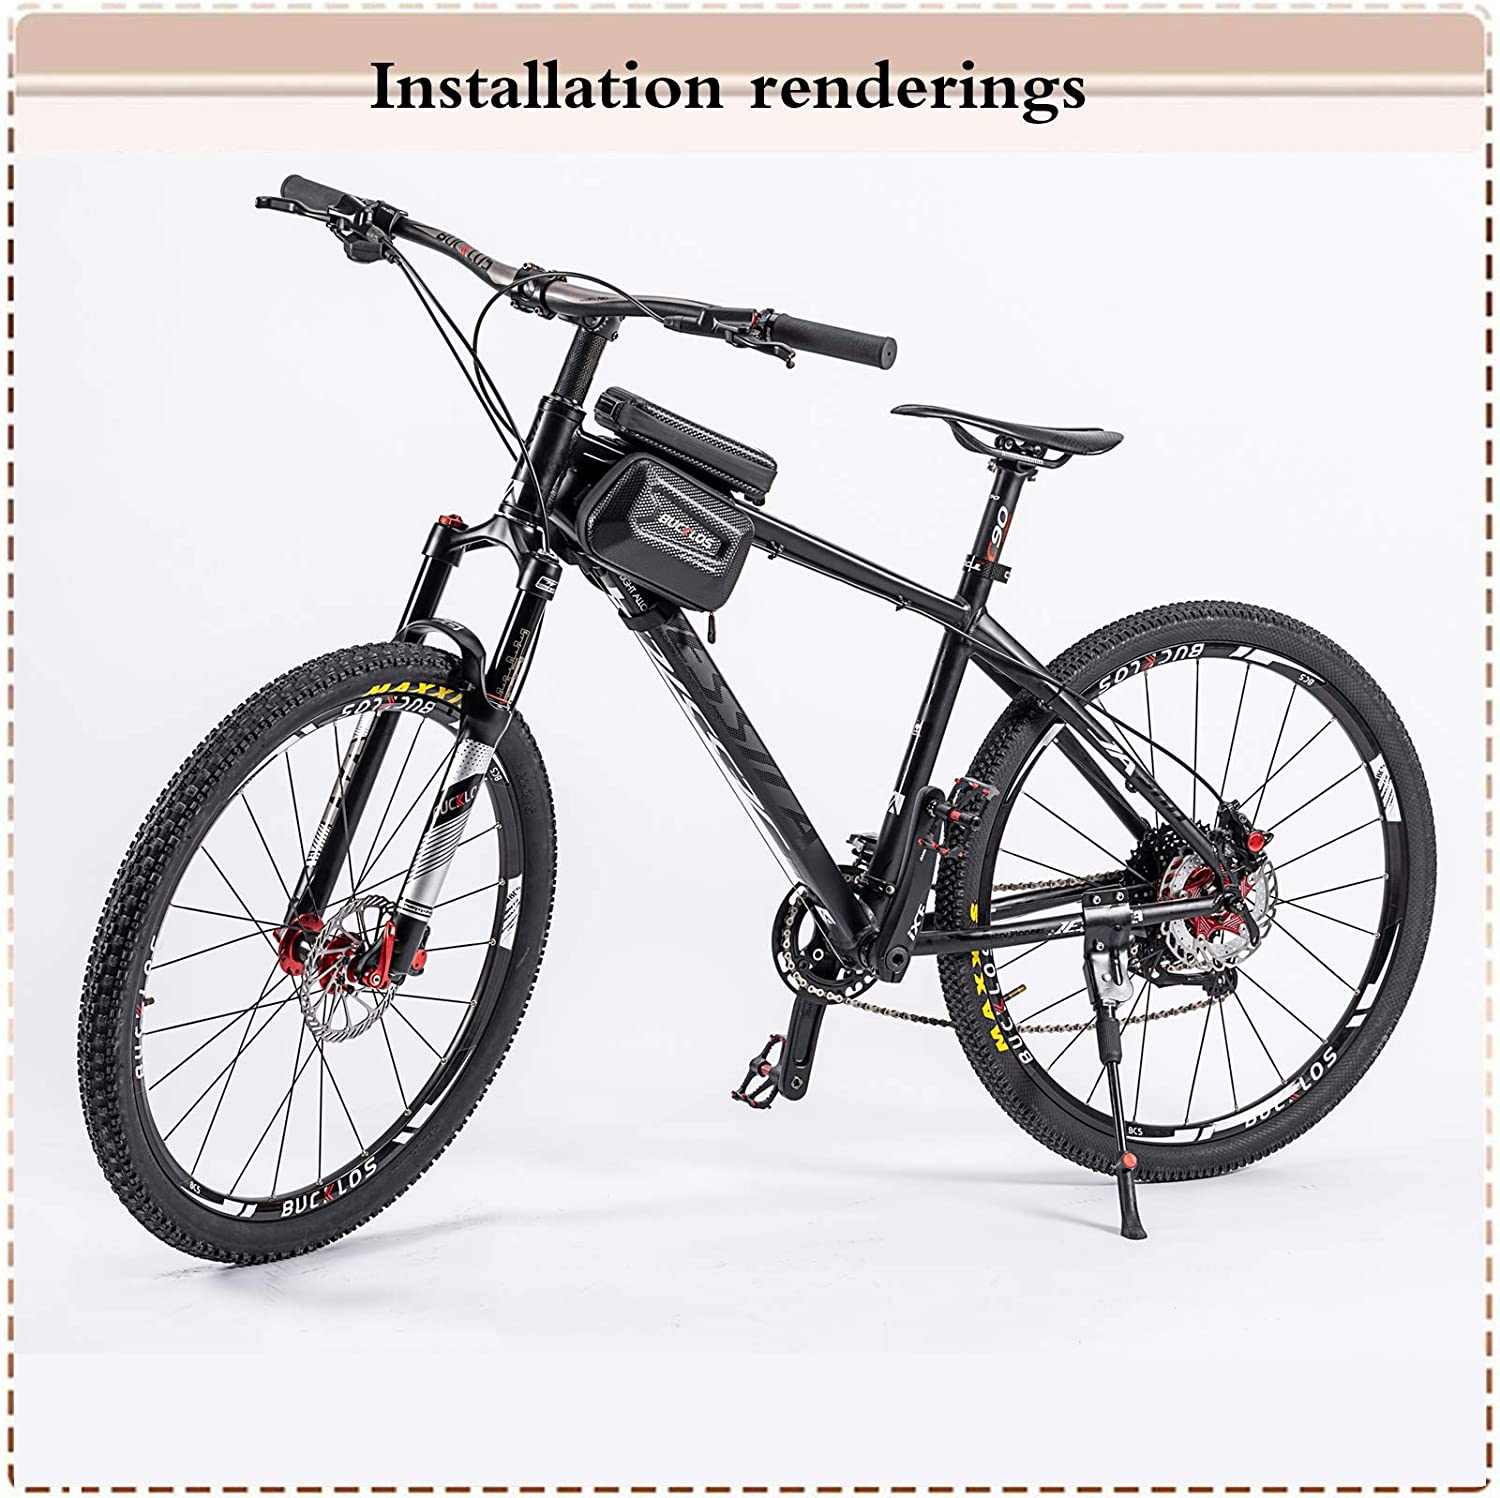 BUCKLOS 26//27.5//29 Travel 120mm MTB Air Suspension Fork Rebound Adjust 1 1//8 Straight//Tapered Tube QR 9mm Manual//Remote Lockout XC AM Ultralight Mountain Bike Front Forks